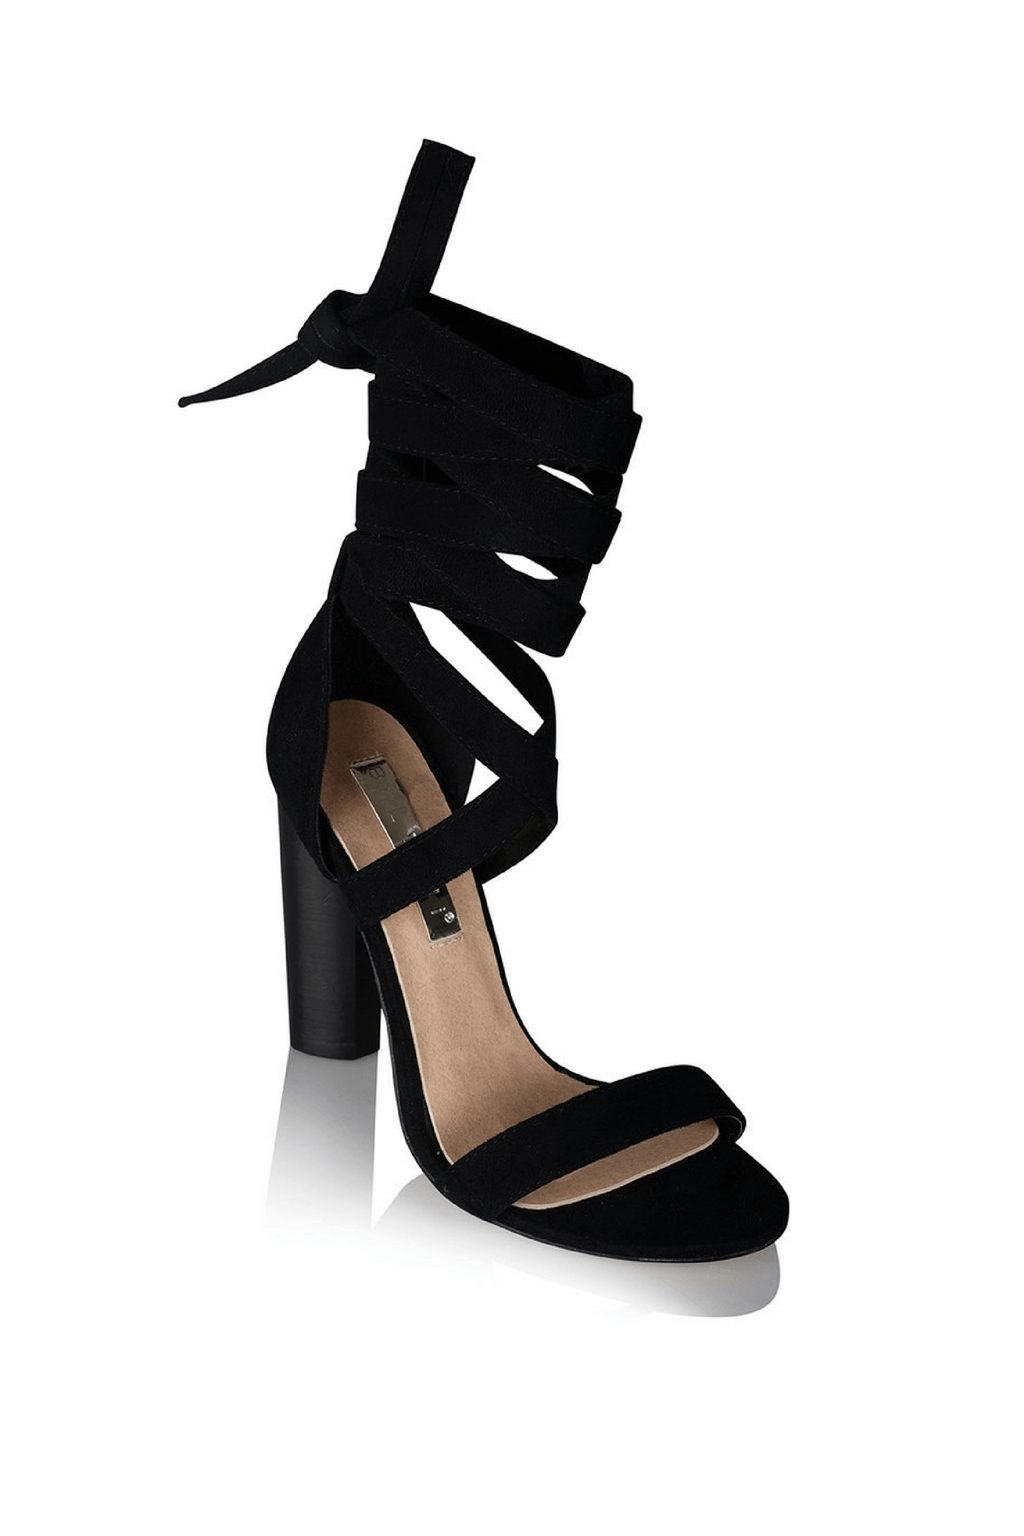 Limera Black Suede - Billini Shoes